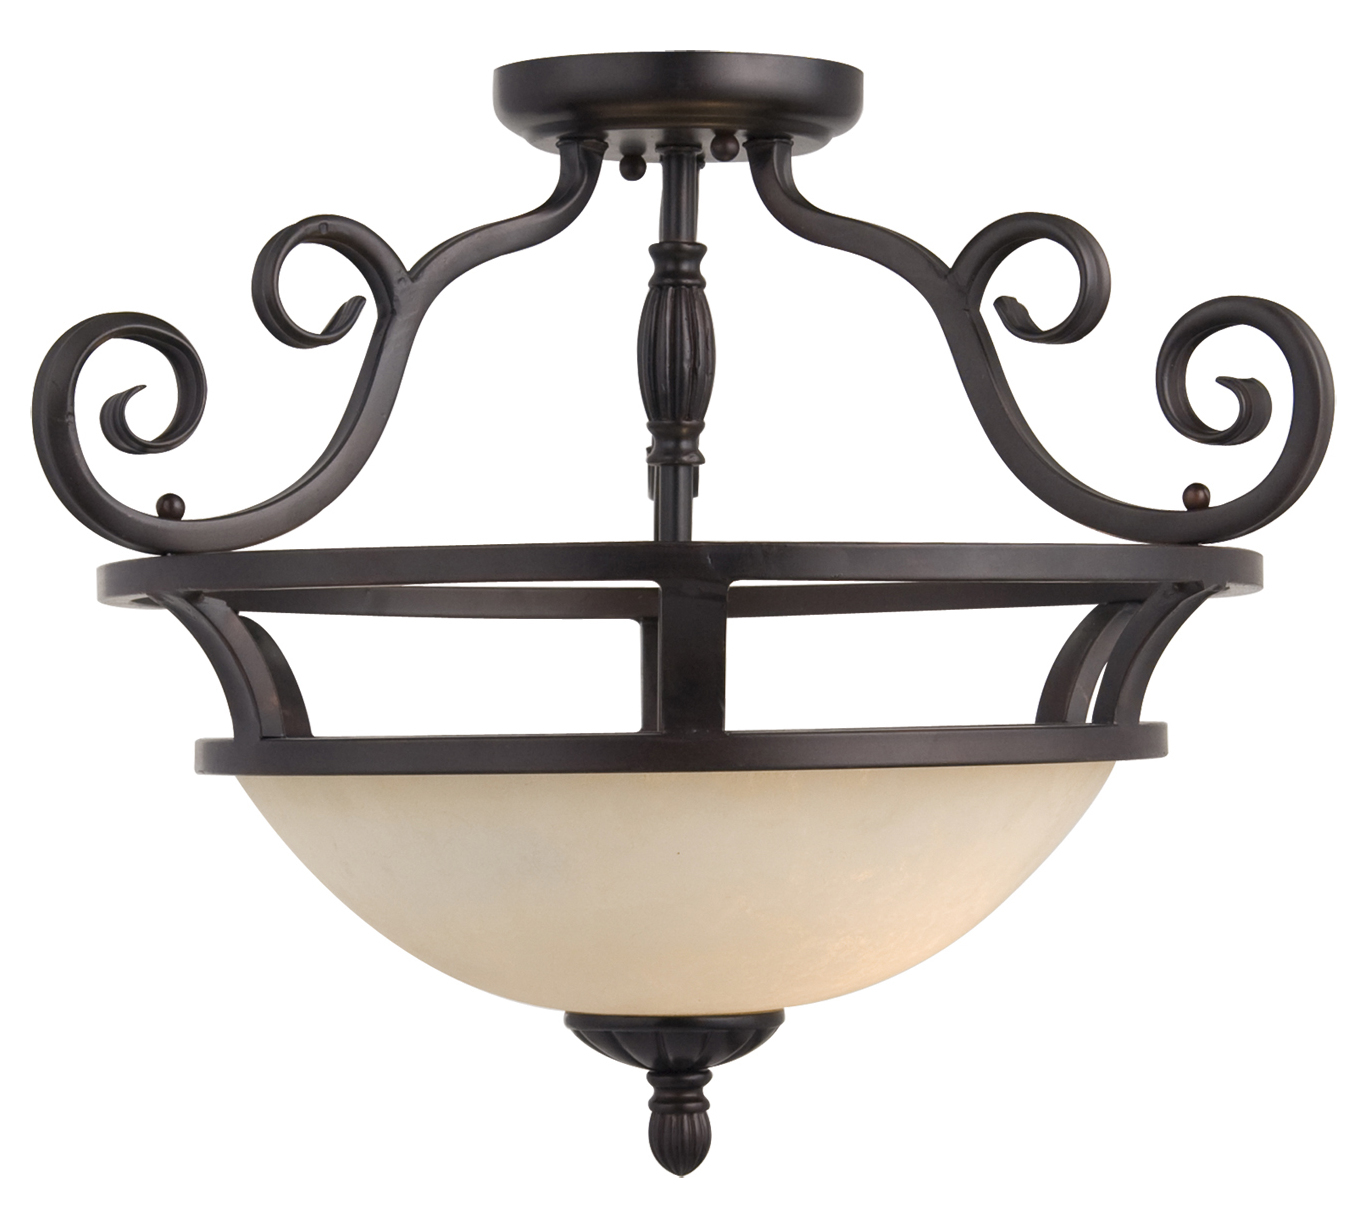 Maxim Two Light Oil Rubbed Bronze Frosted Ivory Glass Bowl Semi-Flush Mount